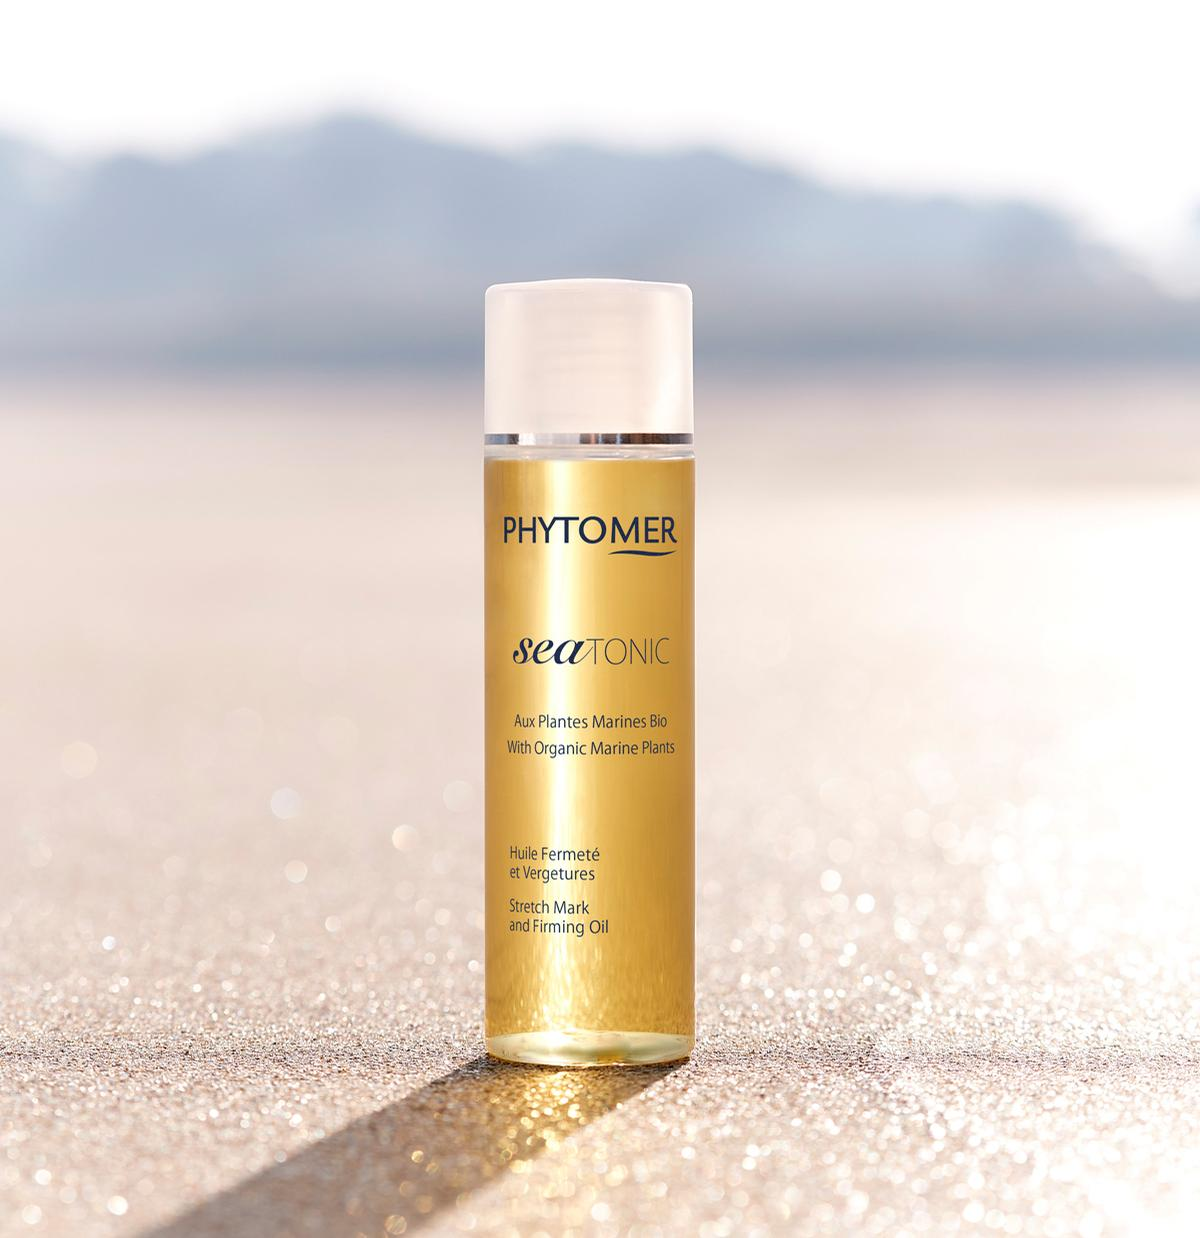 The ultra-light oil has a silky texture and a delicate orange flower scent.